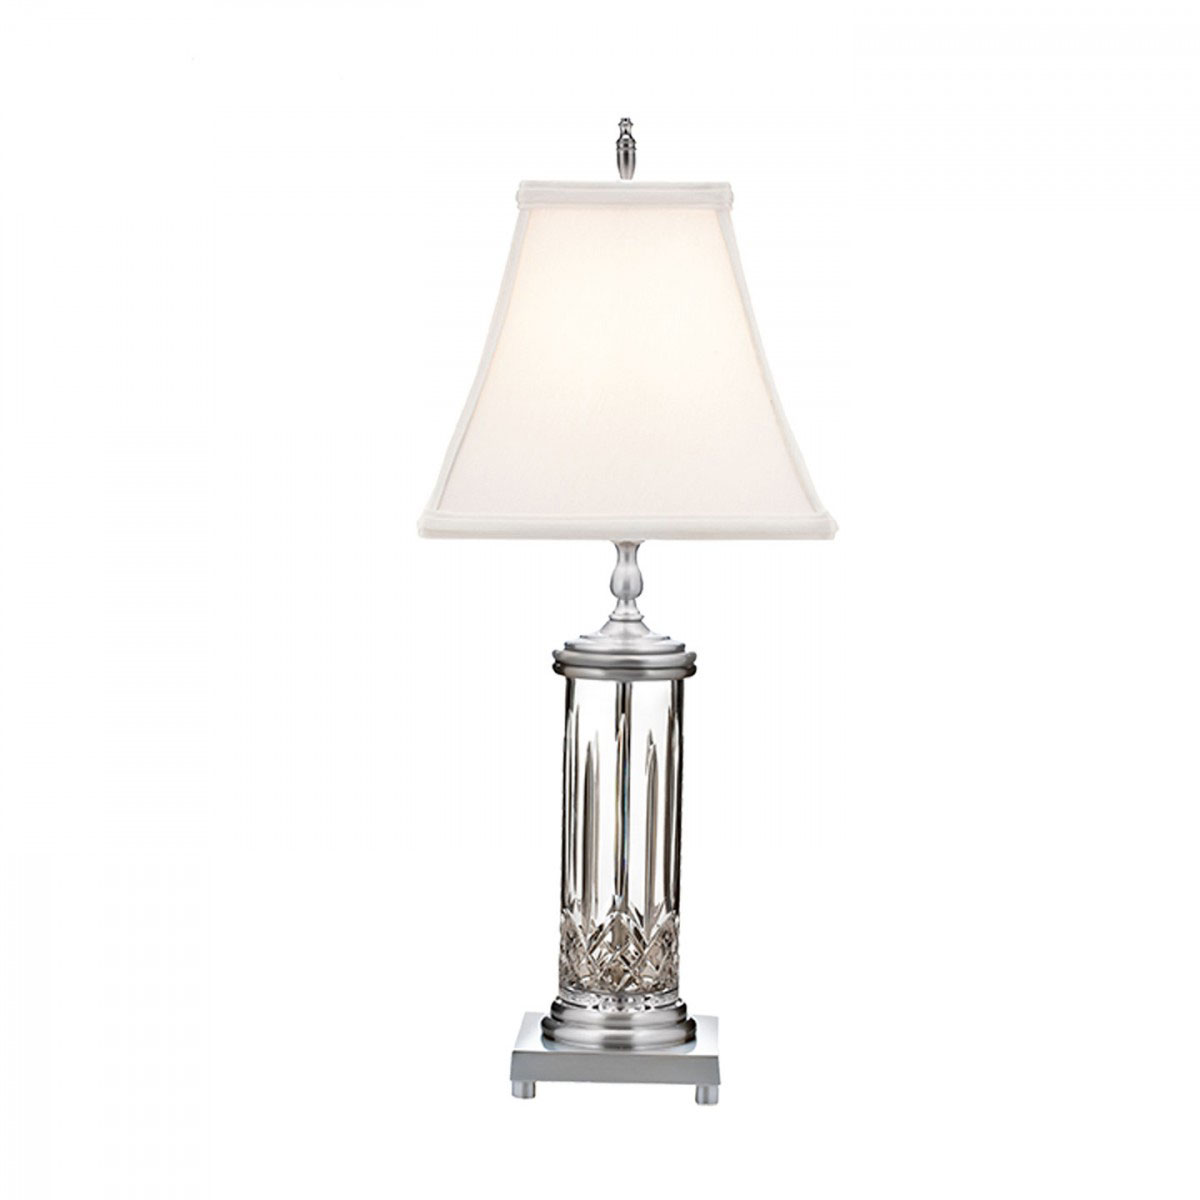 "Waterford Crystal, Lismore 22"" Lamp"